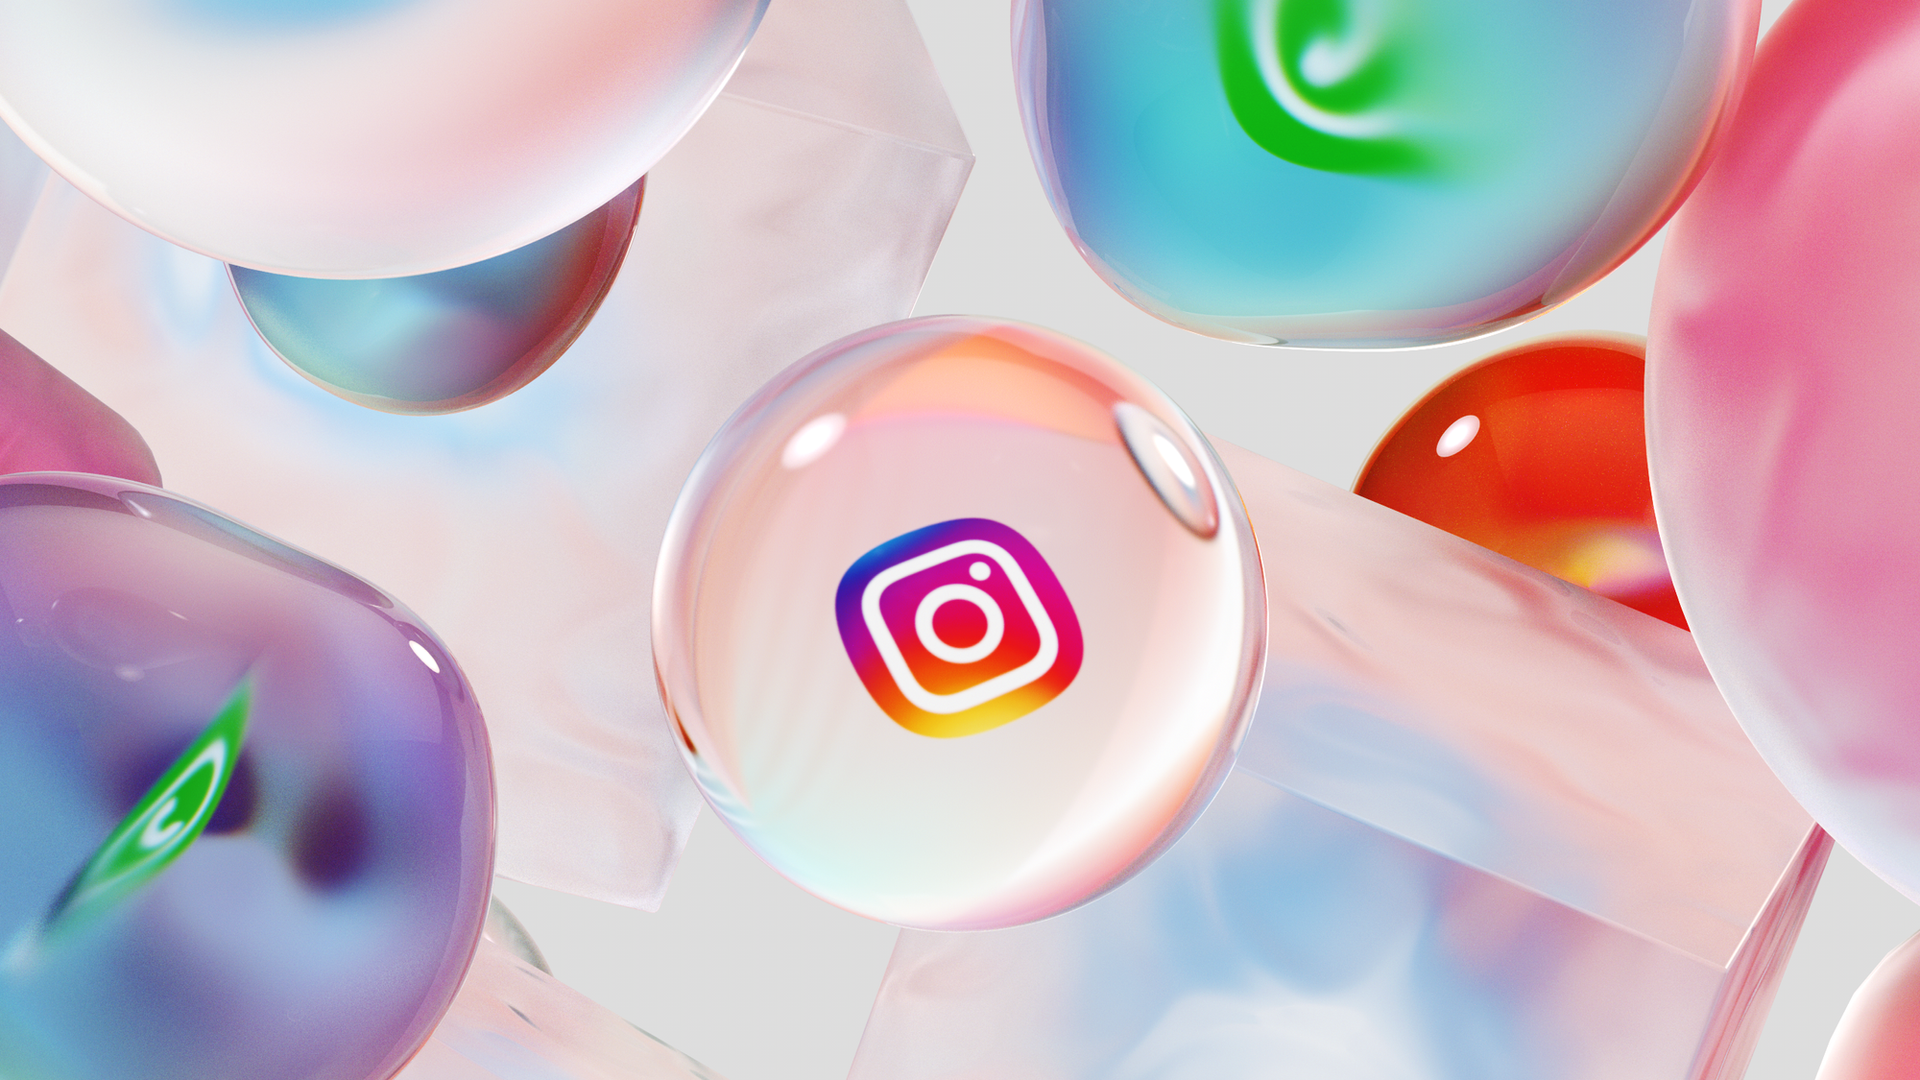 MS_YP_02_Intro_Bubble_Emerging_04_6_0071